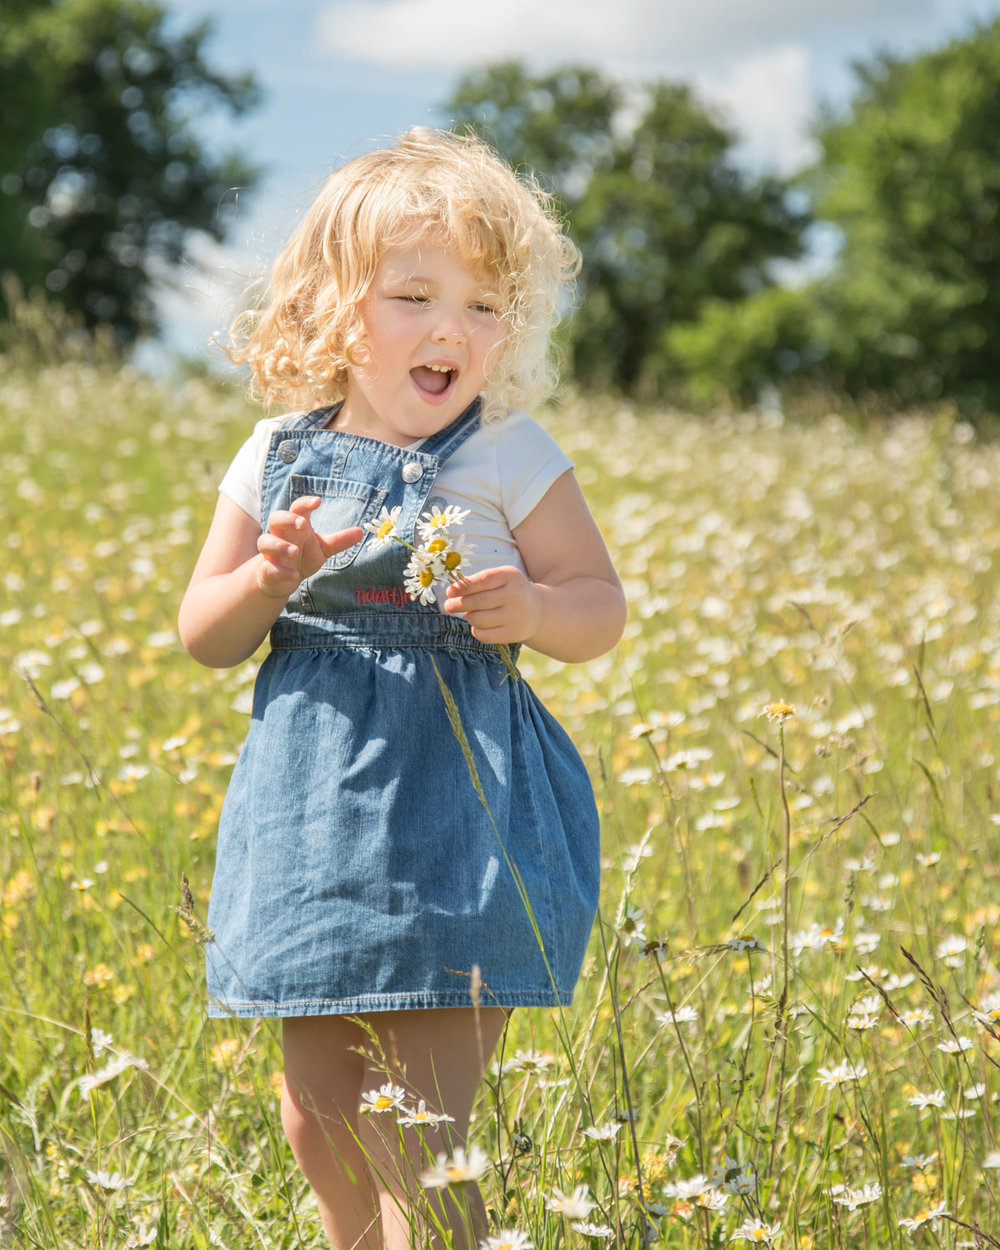 Family_photography_Ely_Cambridgeshire-mini-session-daisies (3).jpg